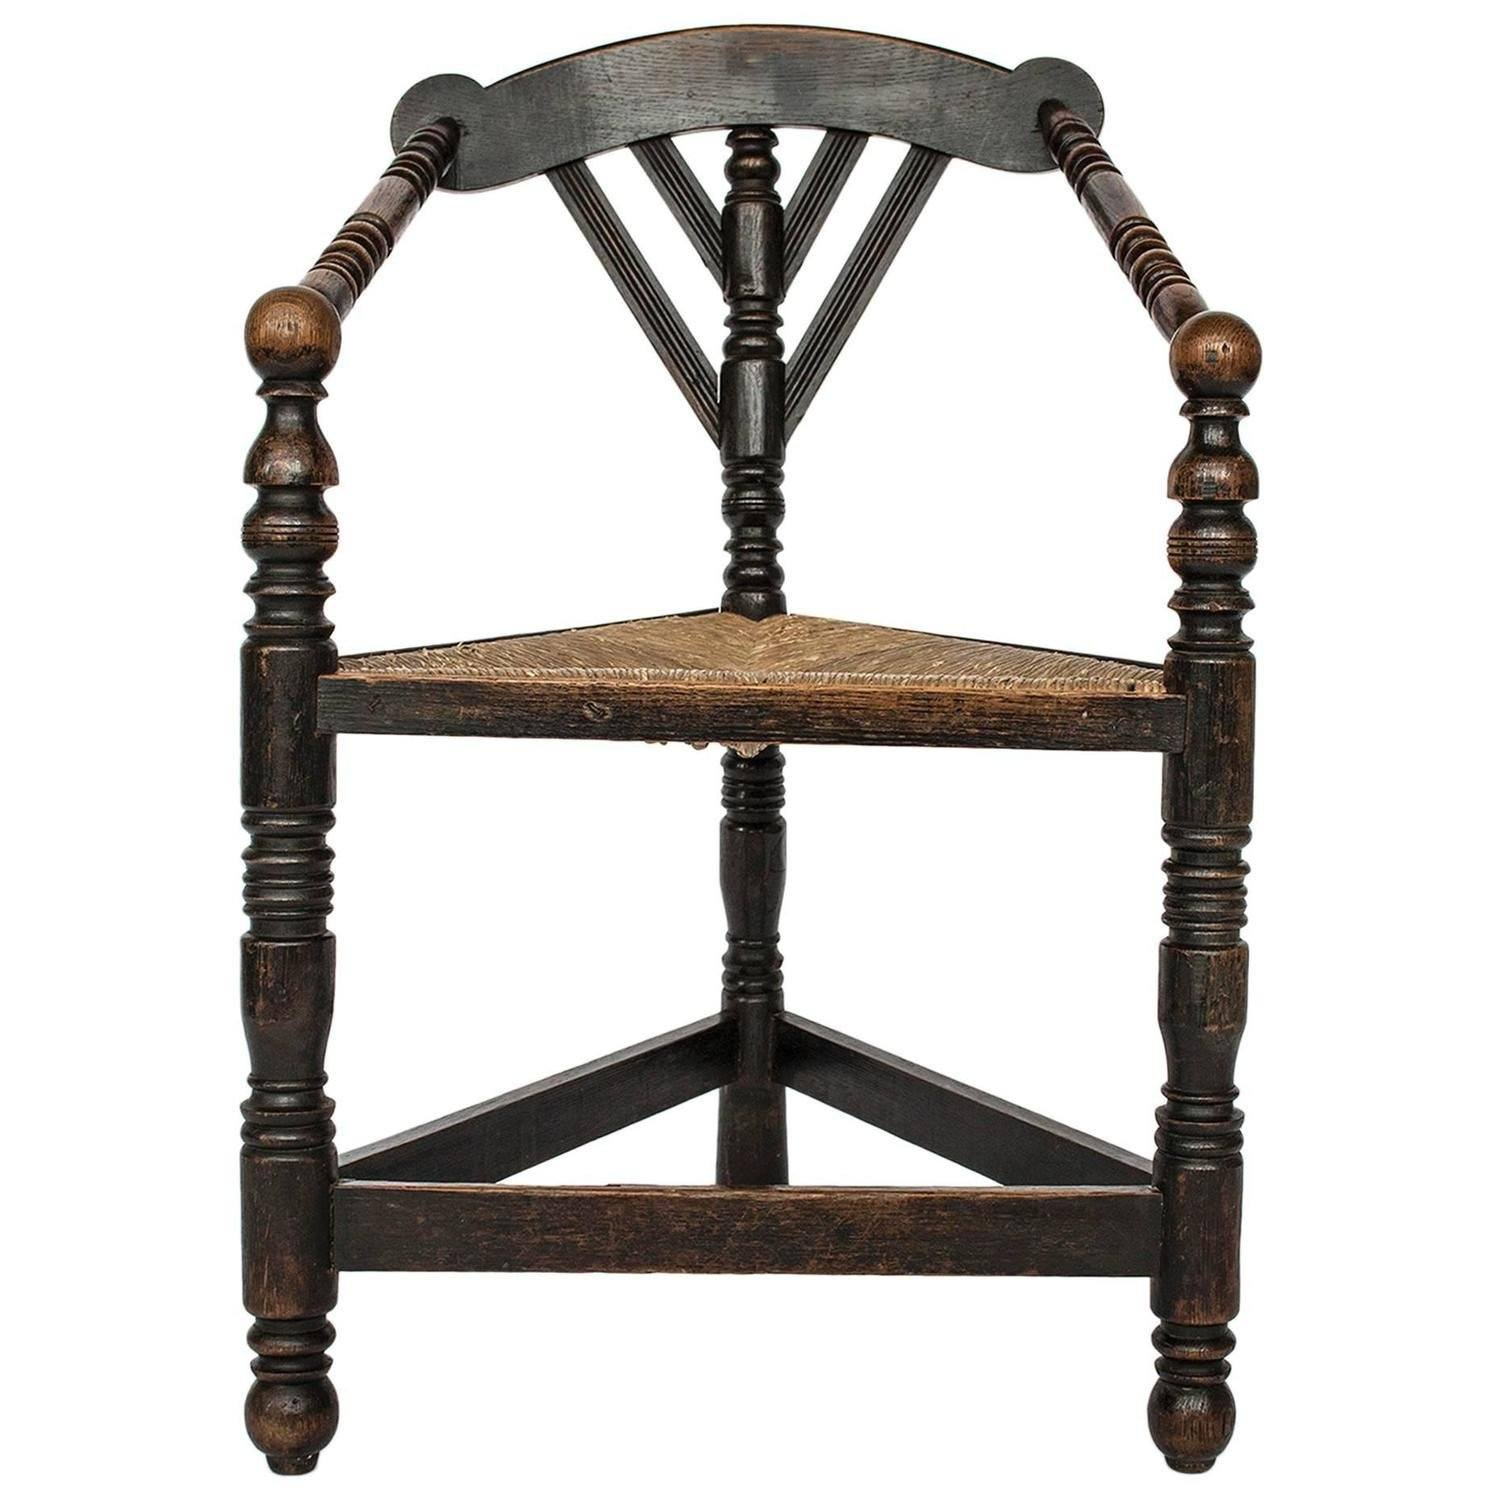 19th Century Arts and Craft Chair - A Modern Grand Tour